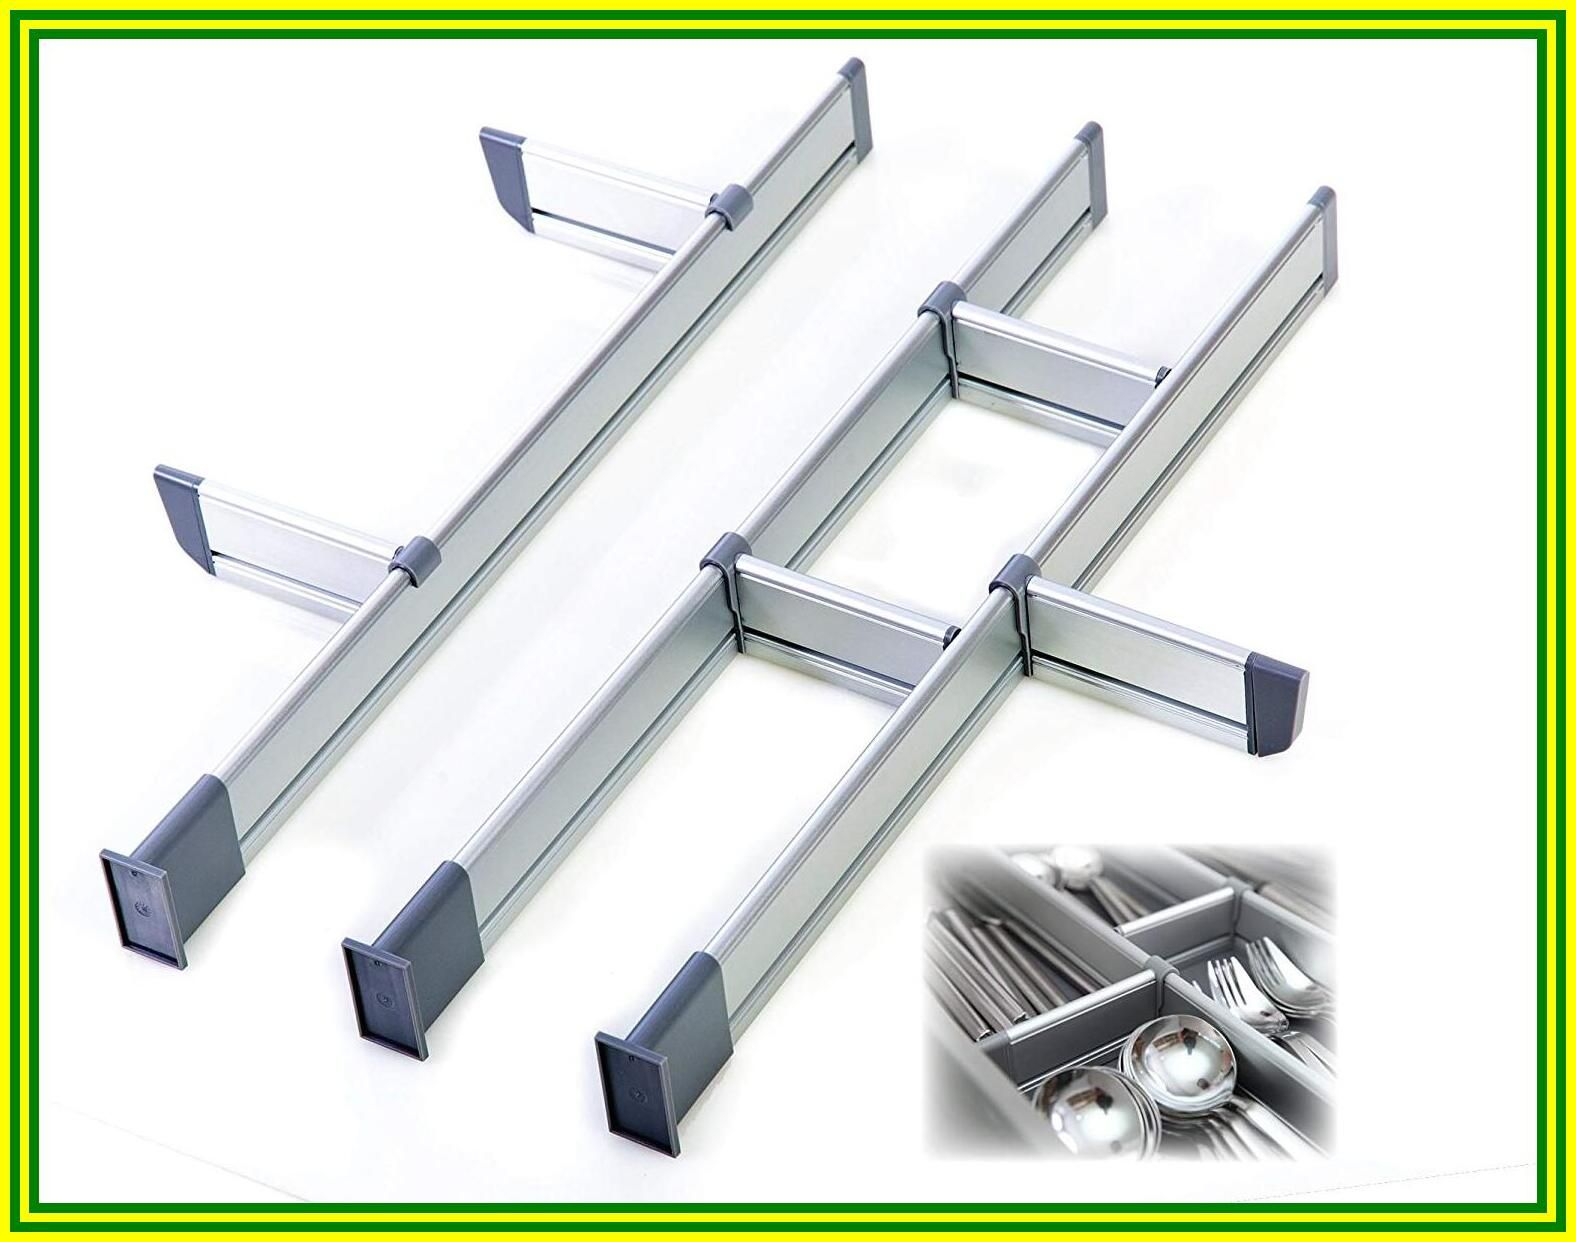 106 Reference Of Kitchen Drawer Dividers Adjustable Australia In